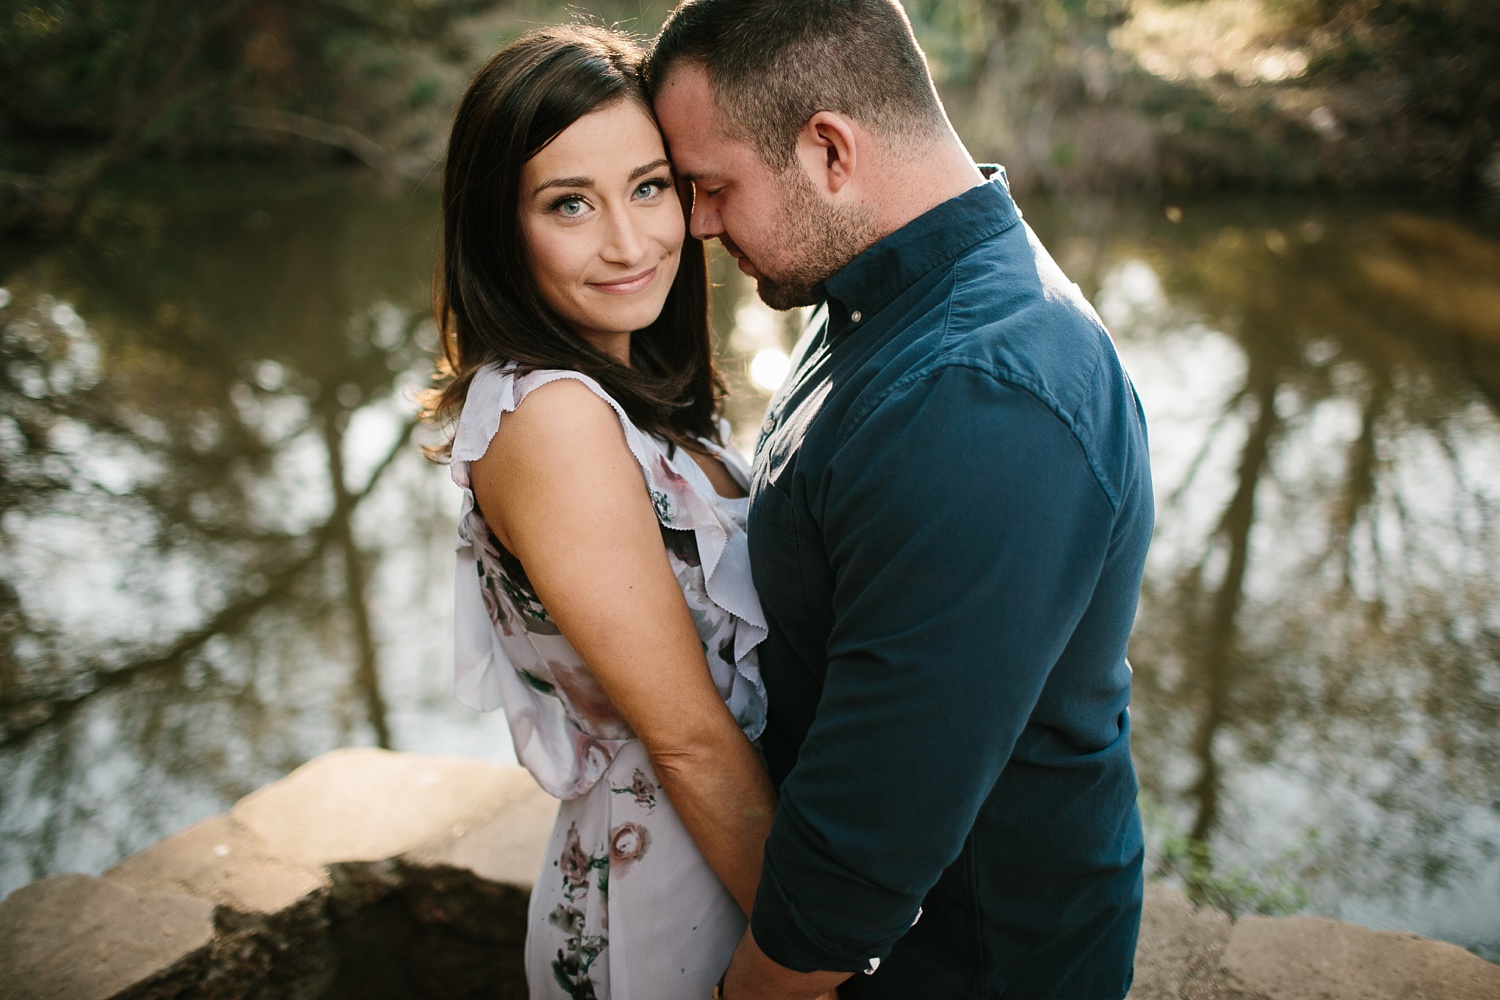 Kadee + Tyler _ a forest and city skyline engagement shoot in Dallas by North Texas Wedding Photographer Rachel Meagan Photography_13